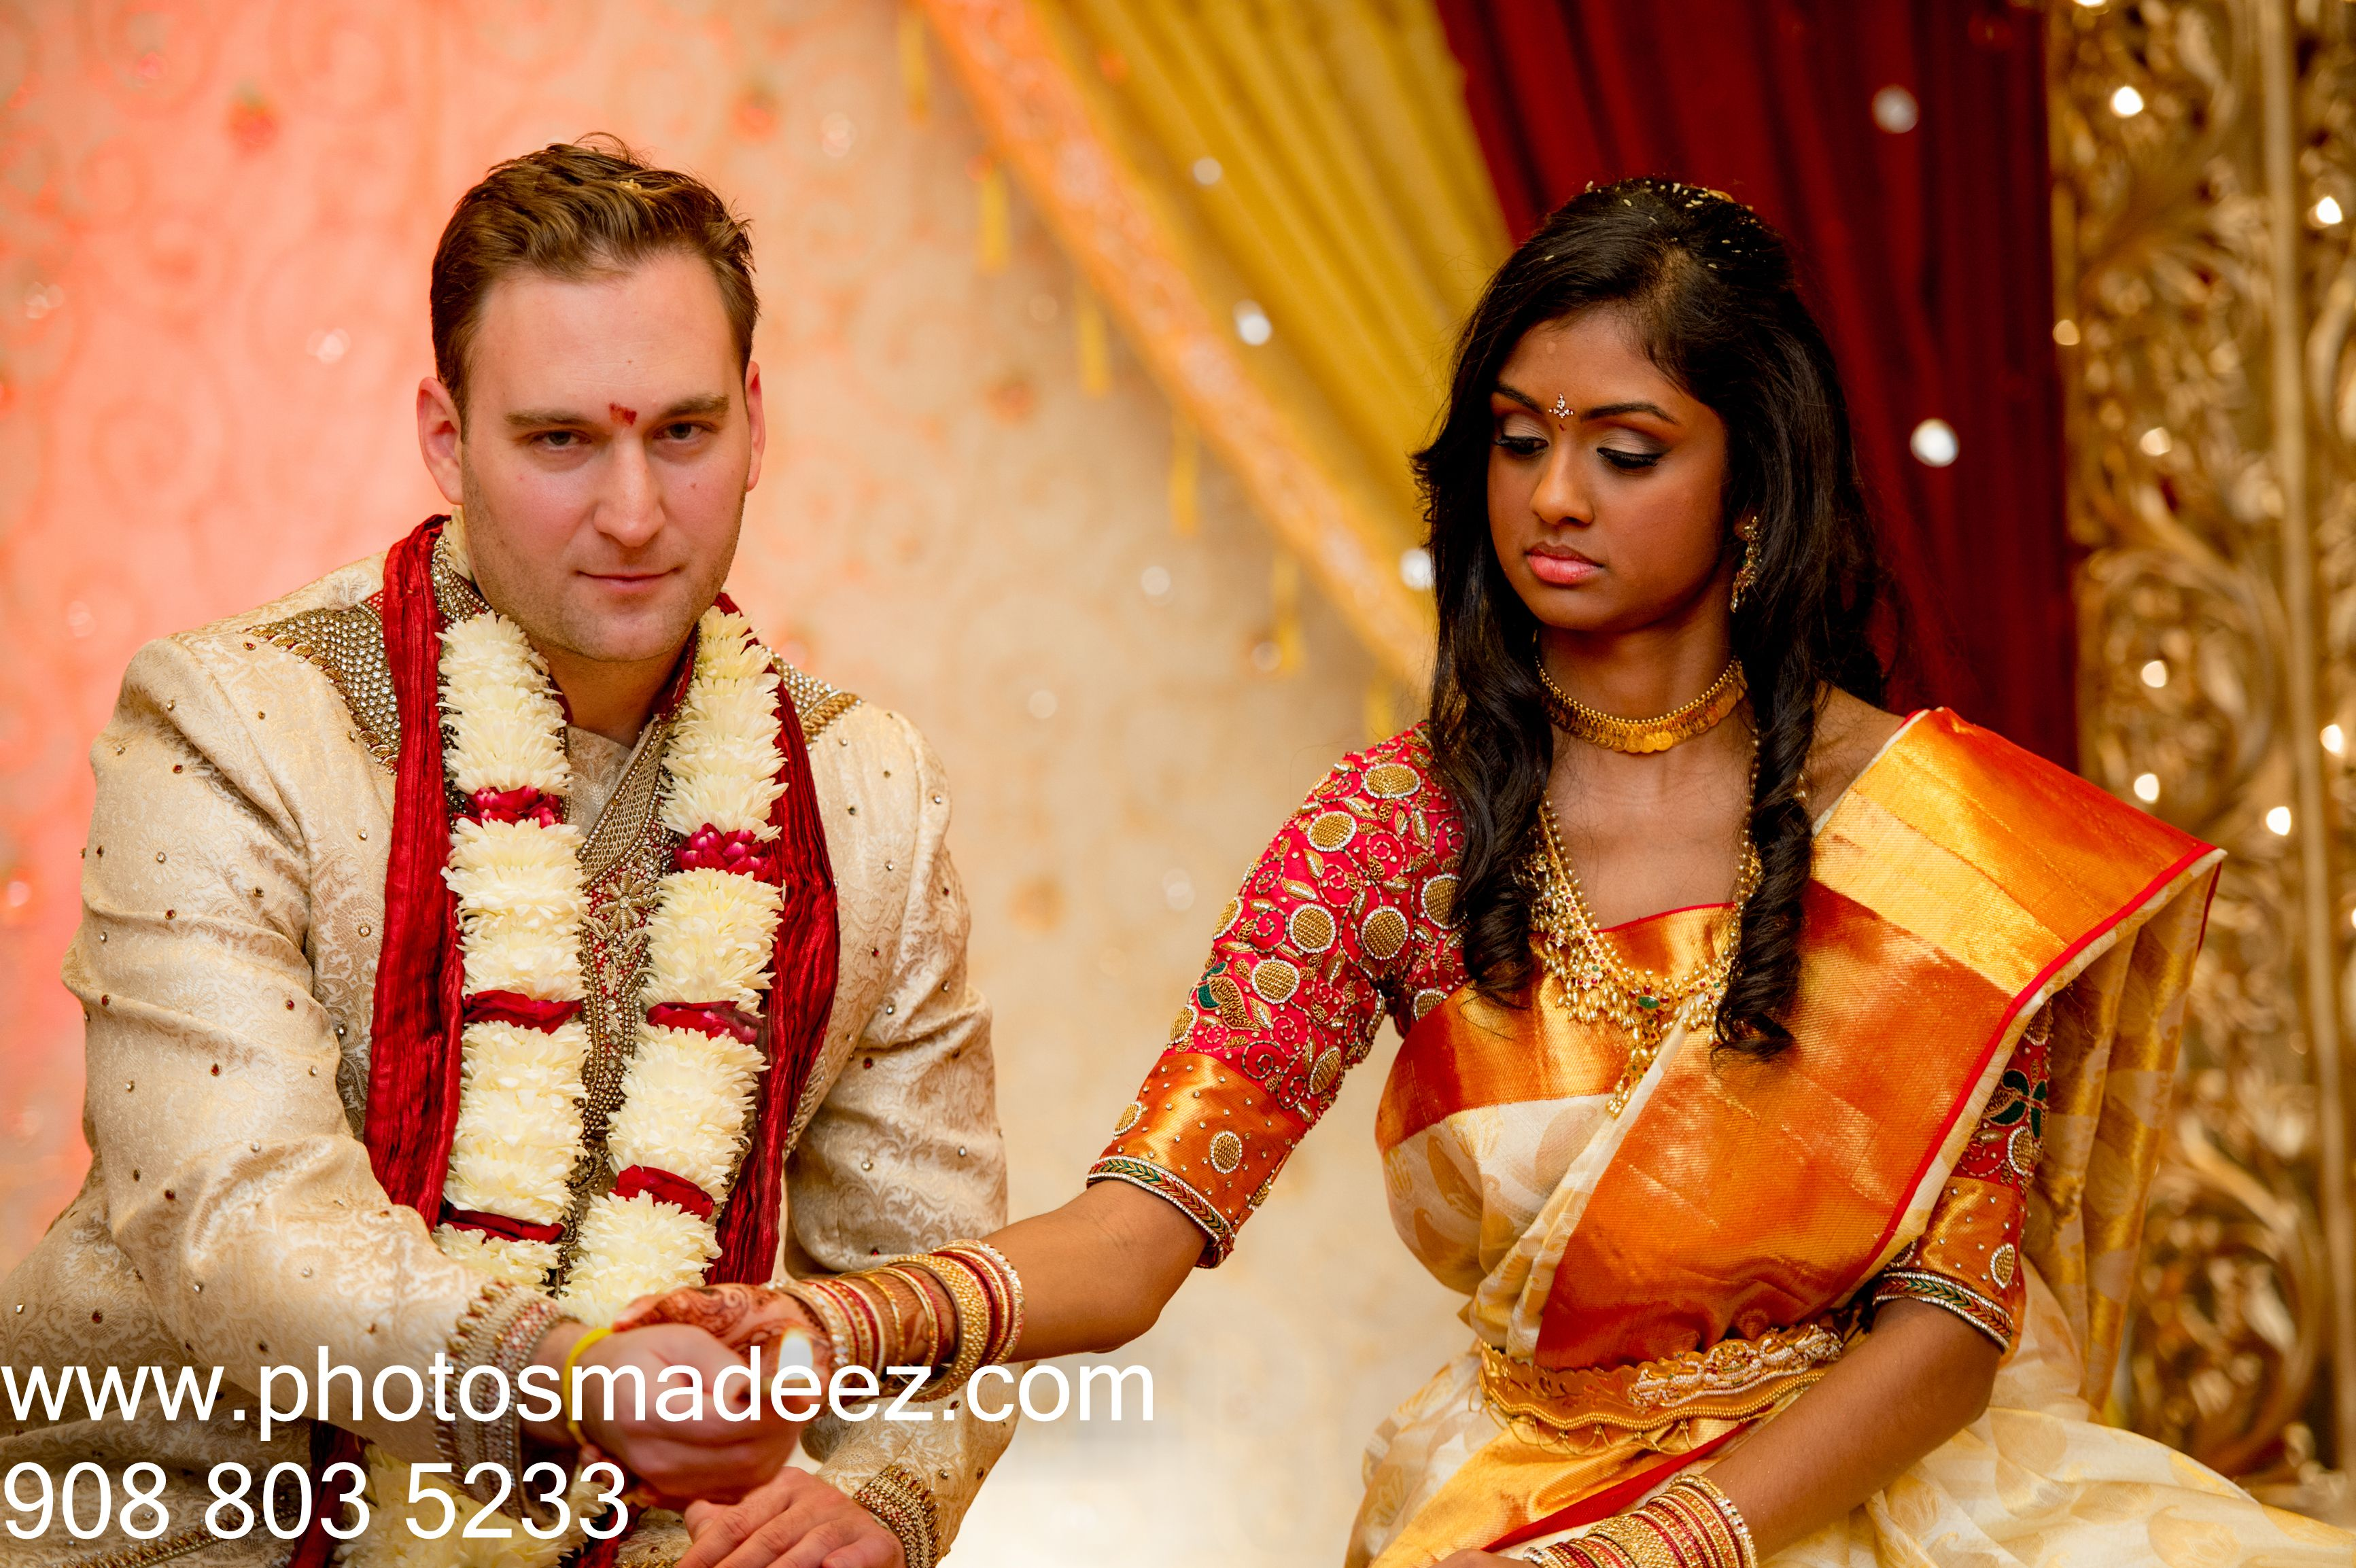 Bride And Groom At Indian Wedding Ceremony Mahwah Sheraton Mixed Interfaith